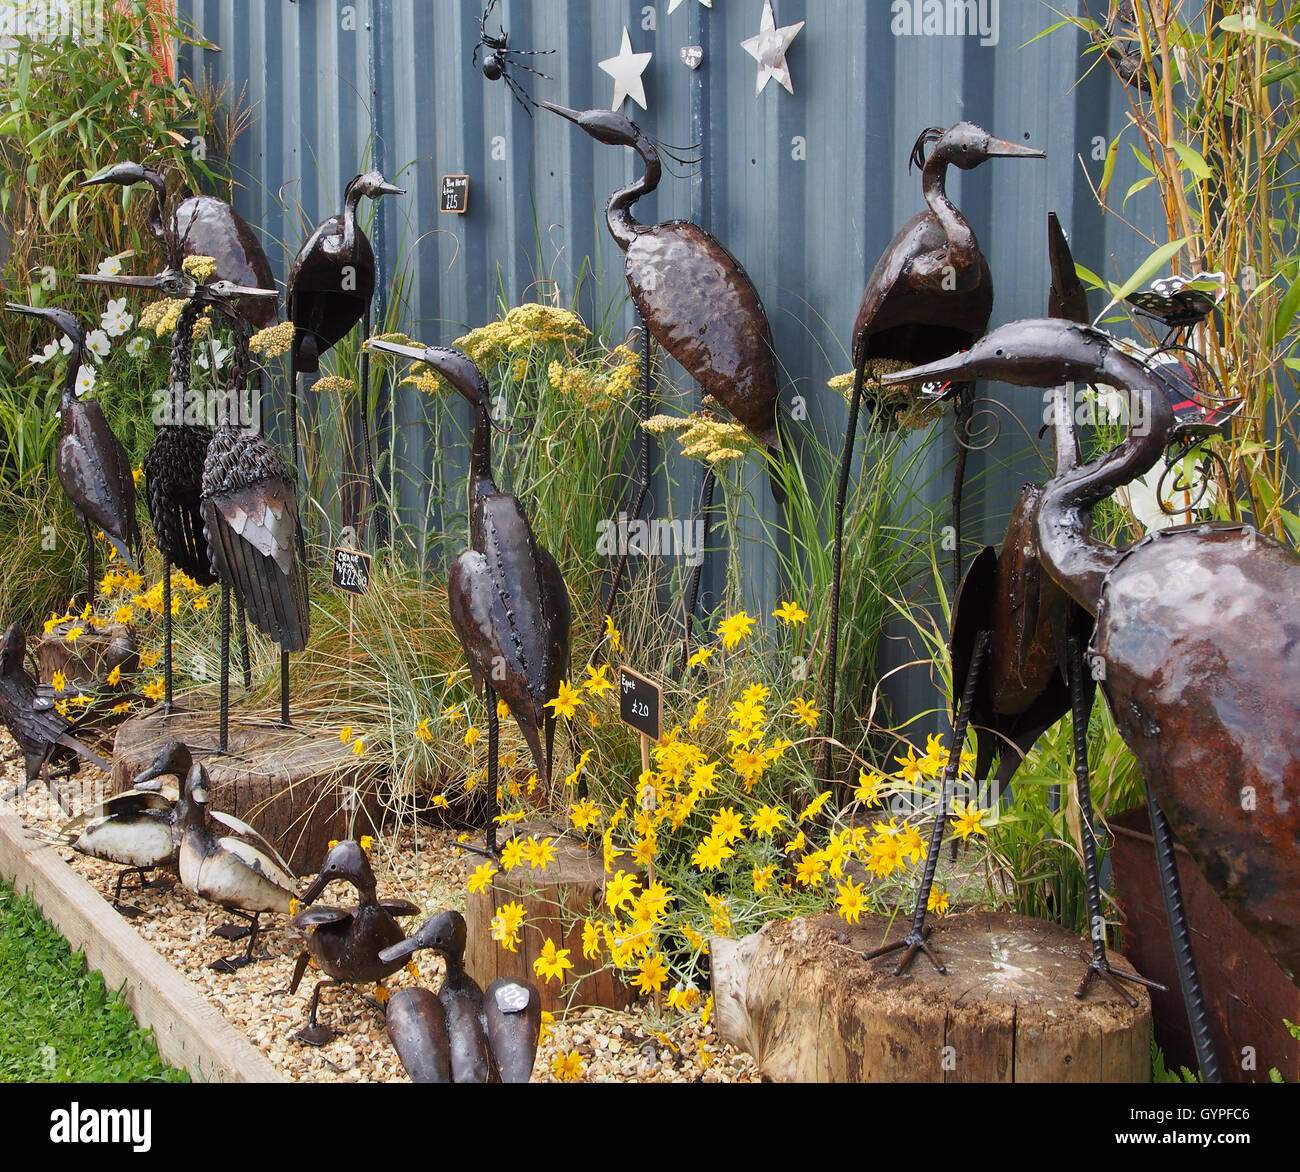 Exhibit Of Metal Garden Ornaments By Chi Africa At Tatton Park Flower Show  2016, In Knutsford, Cheshire, England.